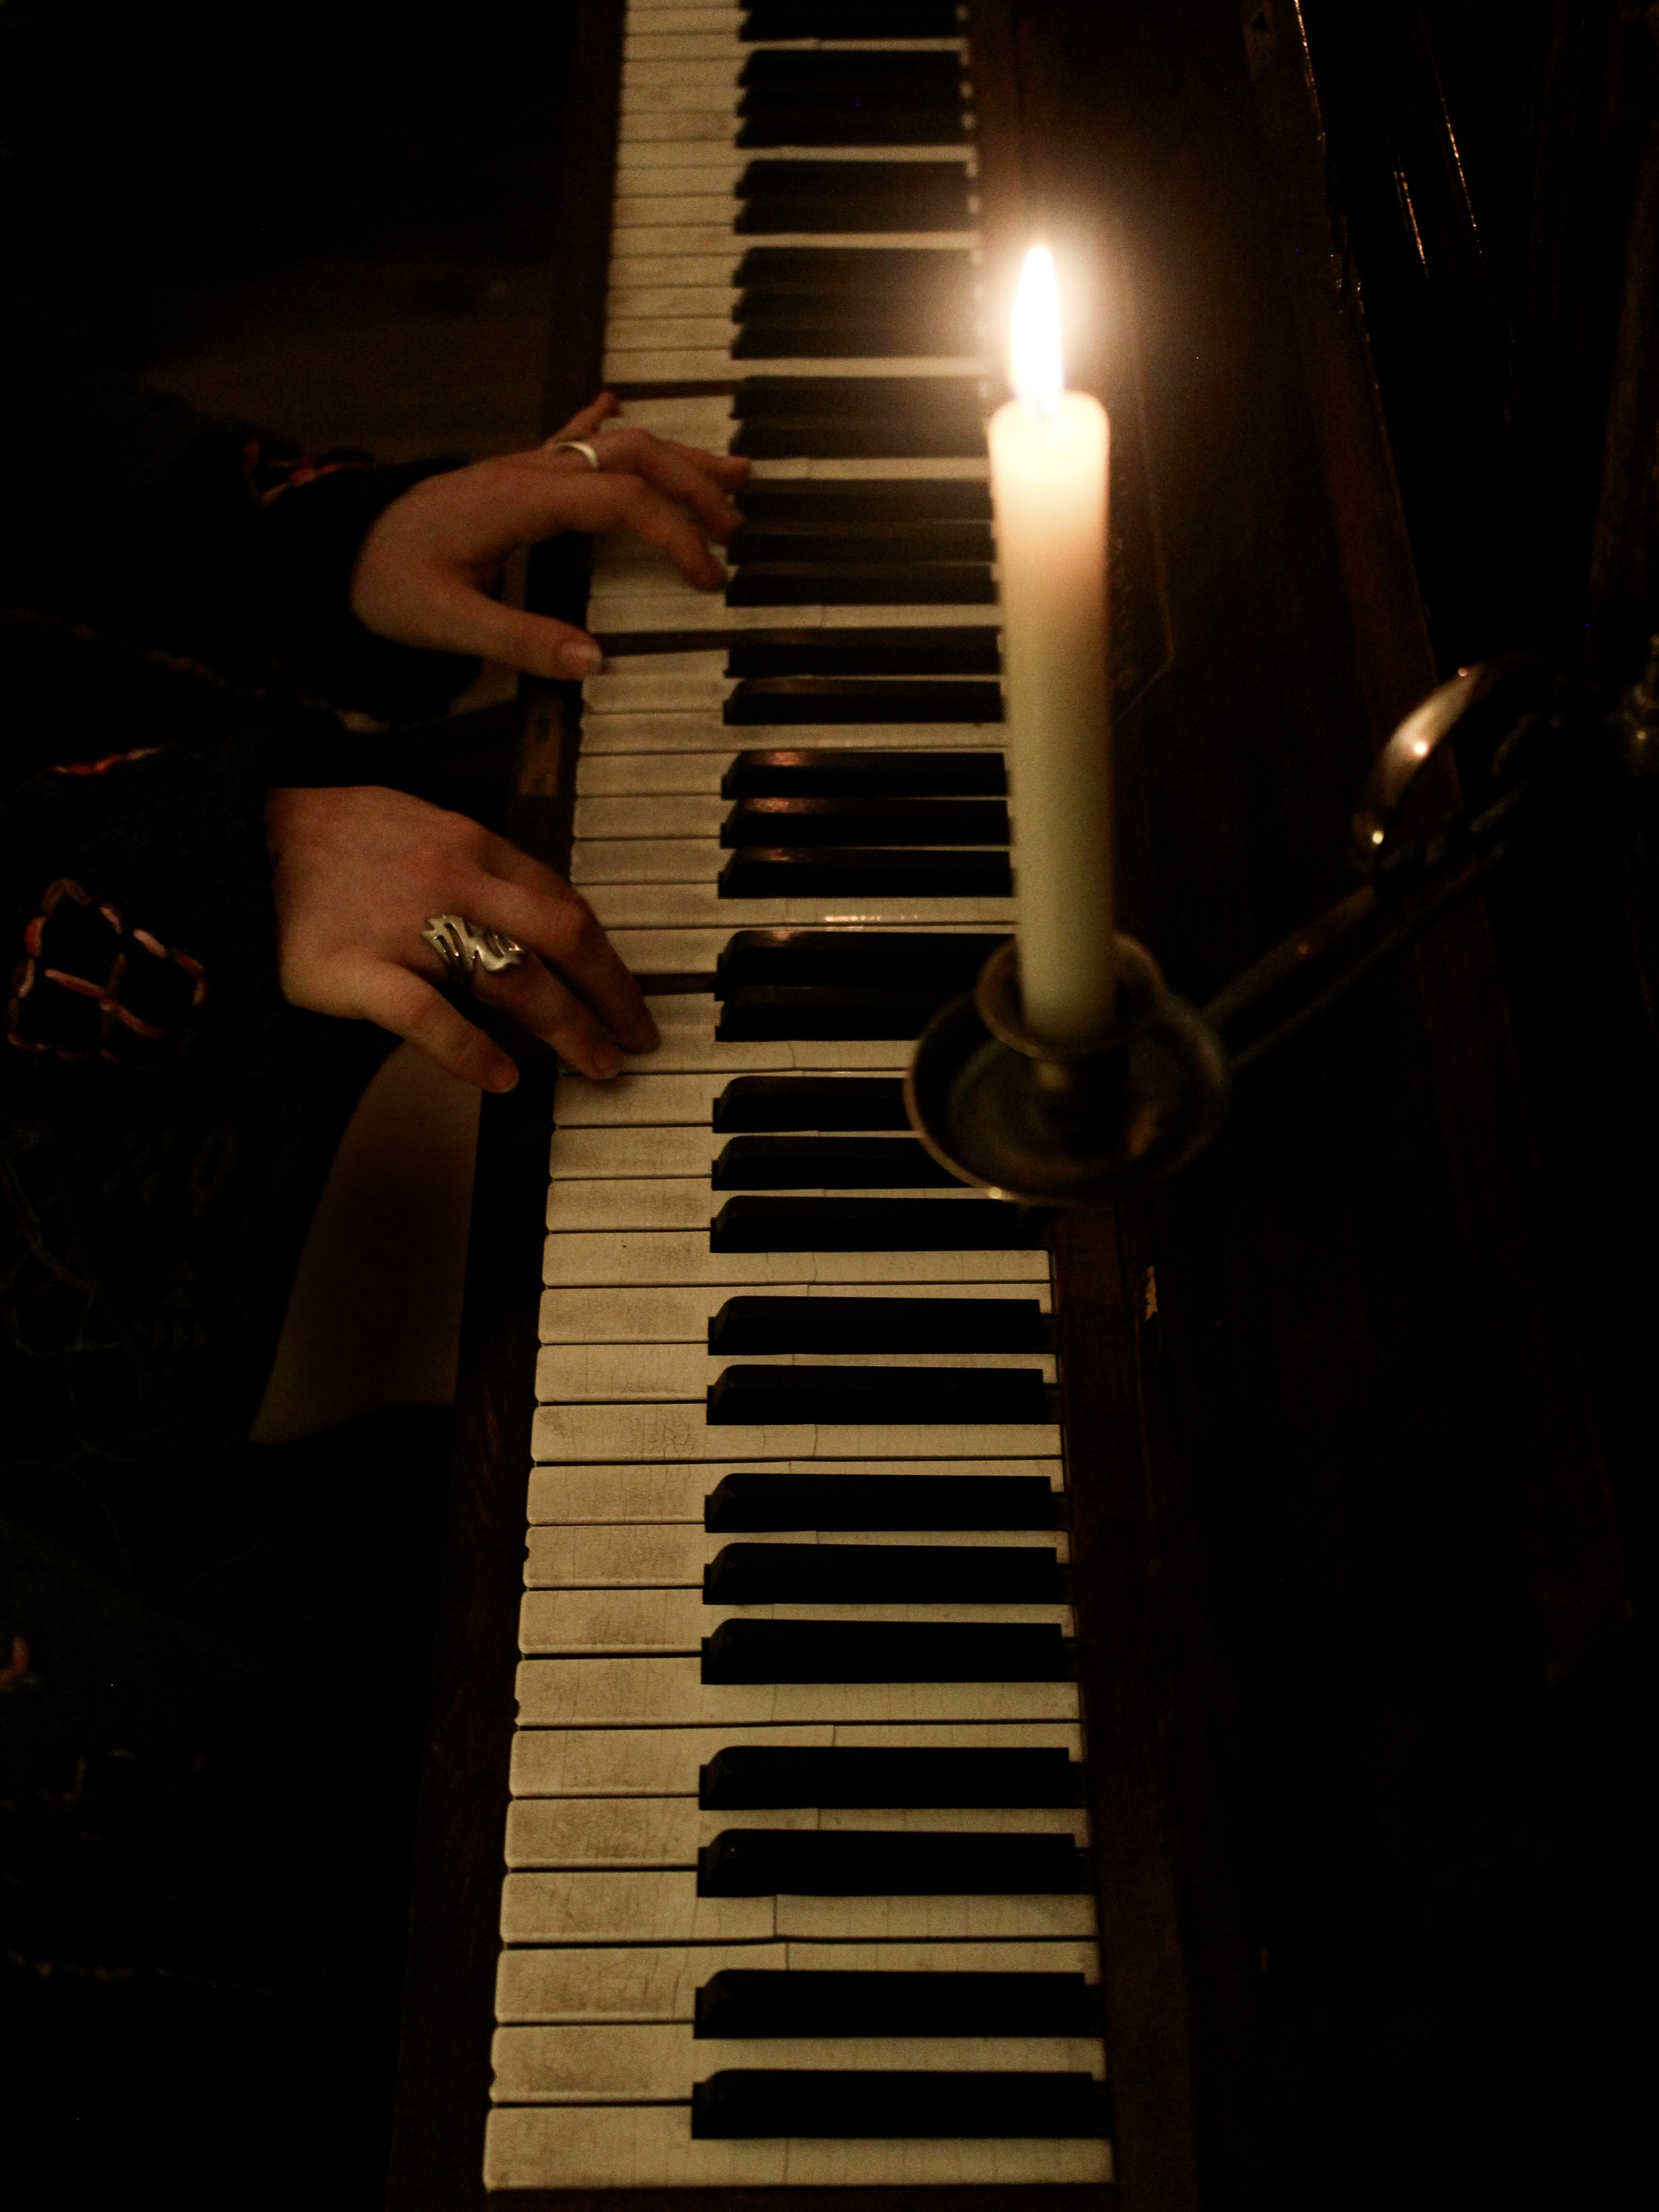 Zoë Moskal: Playing By Candlelight